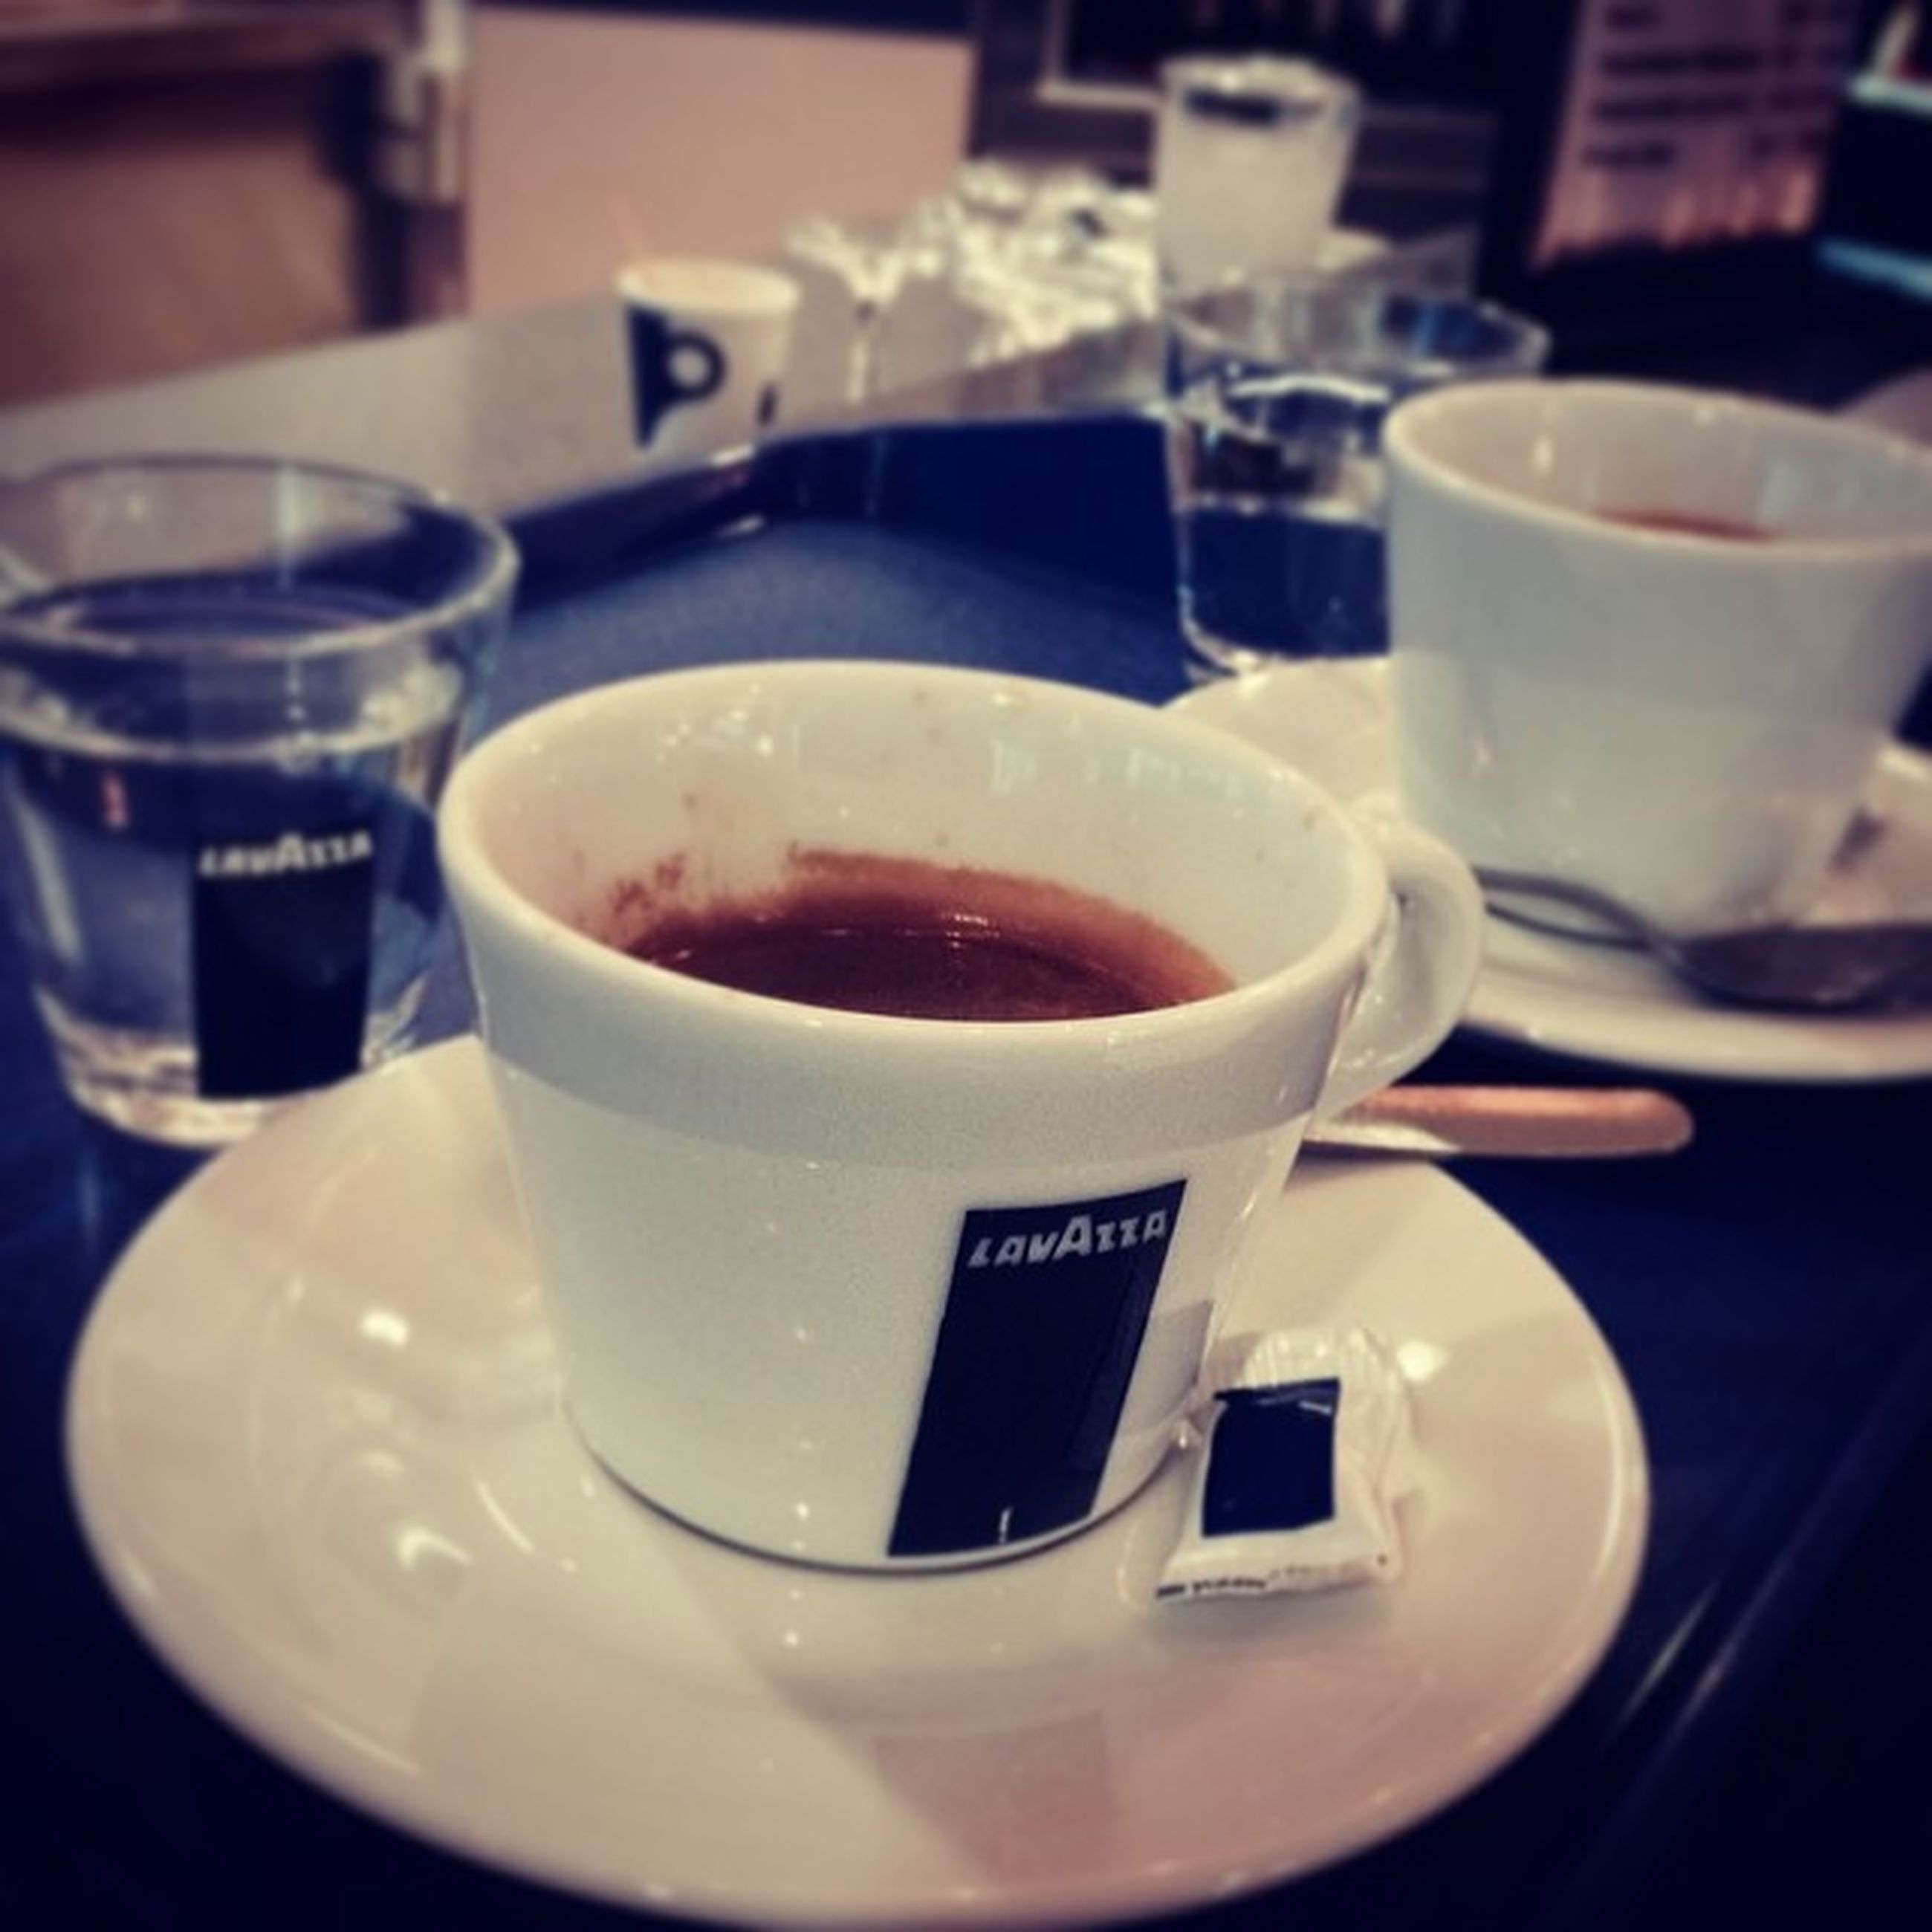 food and drink, drink, indoors, coffee cup, table, freshness, refreshment, saucer, coffee - drink, still life, coffee, cup, close-up, frothy drink, spoon, plate, tea cup, breakfast, food, no people